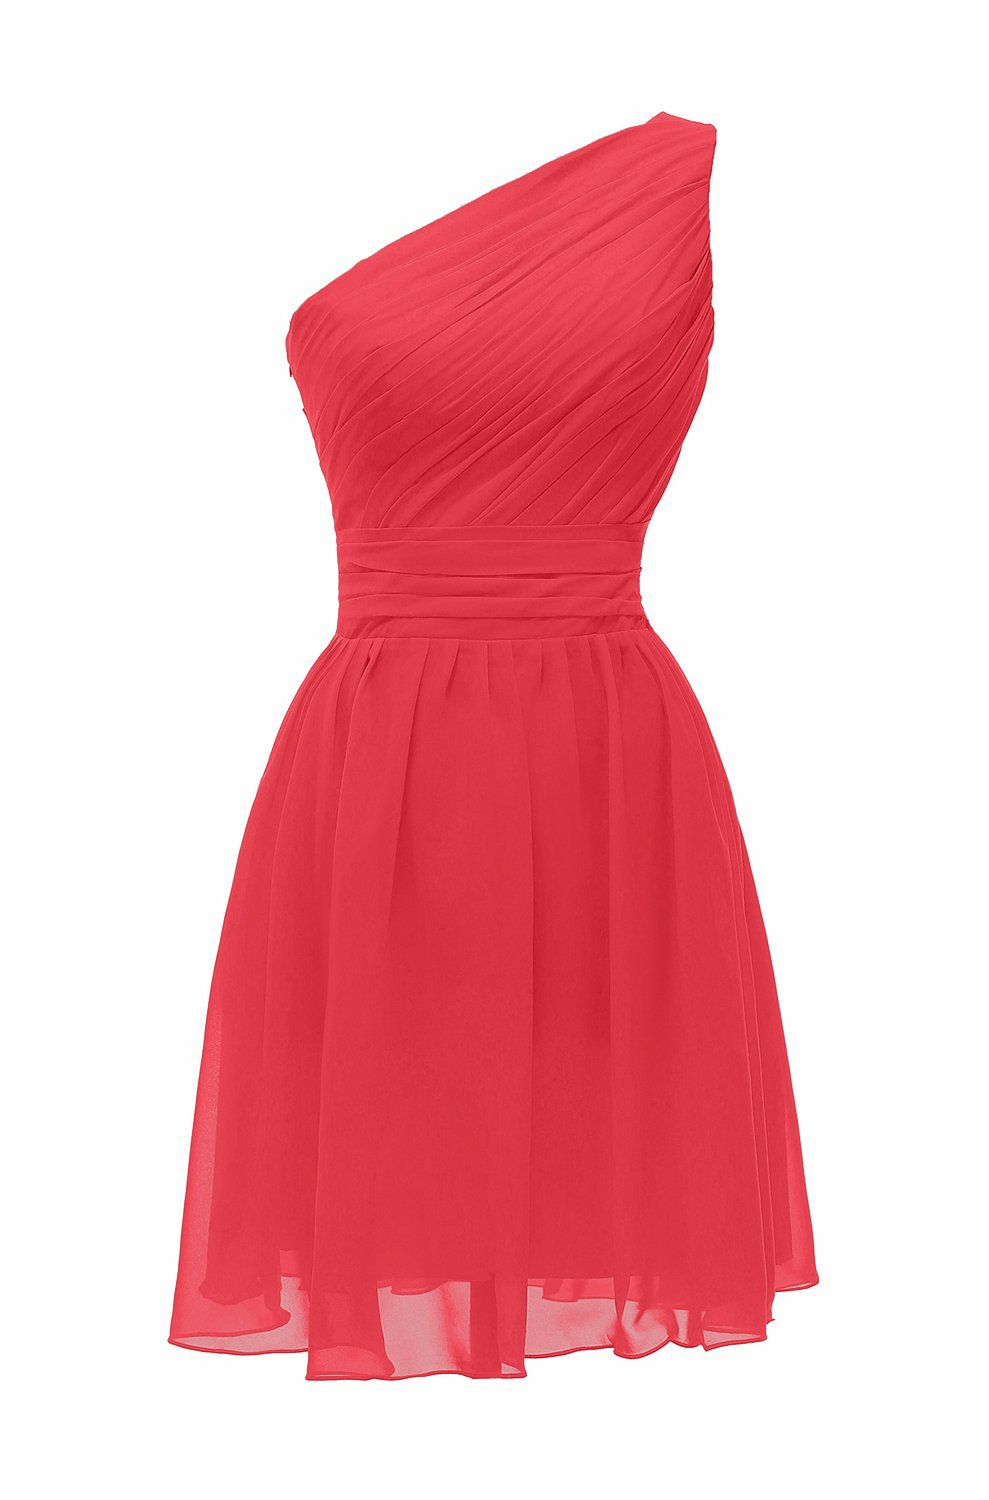 ThaliaDress Short One Shoulder Bridesmaid Evening Dresses Prom Gowns T195LF Coral US16